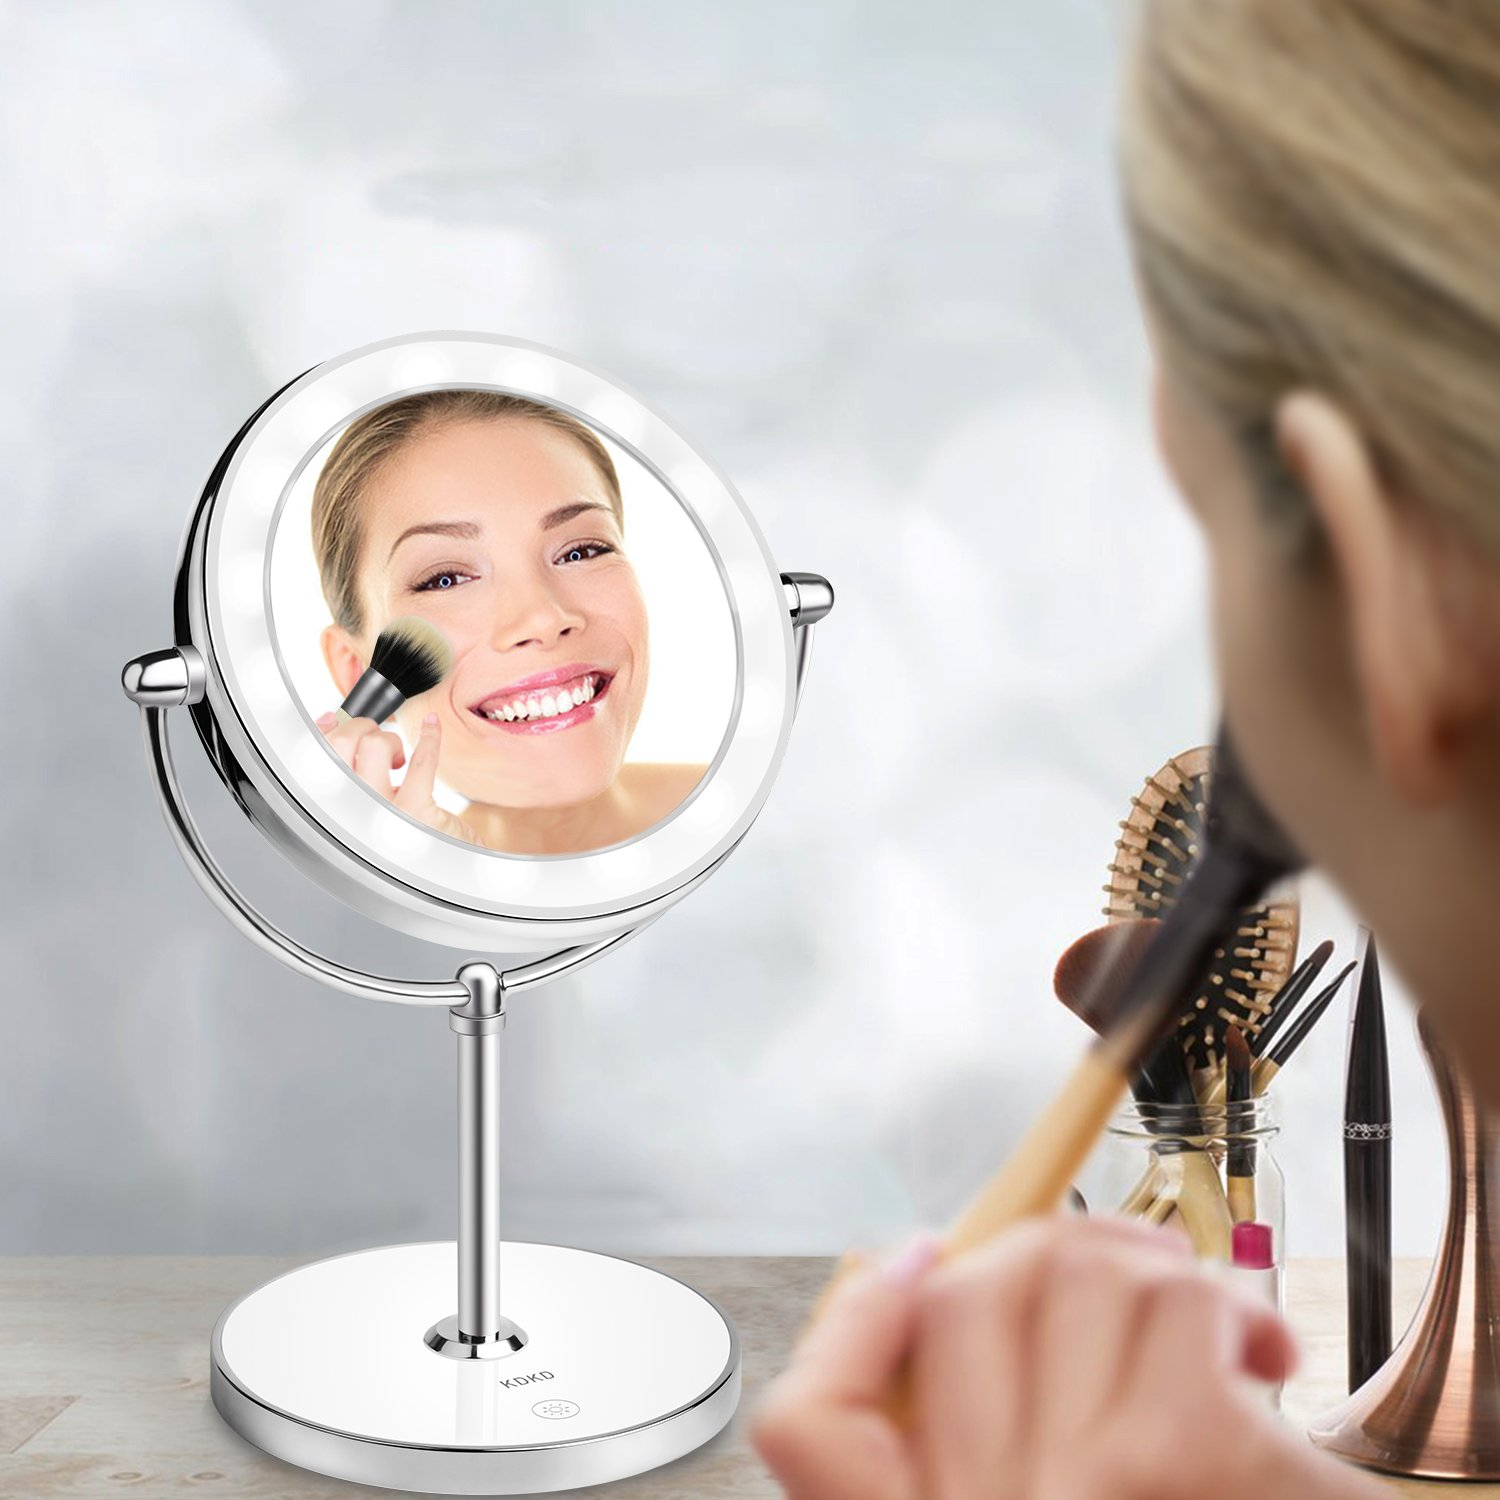 KDKD Lighted Makeup Mirror 1X 7X Magnification Double Sided Round Shape with Base Touch Button, Cordless and Rechargeable by KDKD (Image #5)